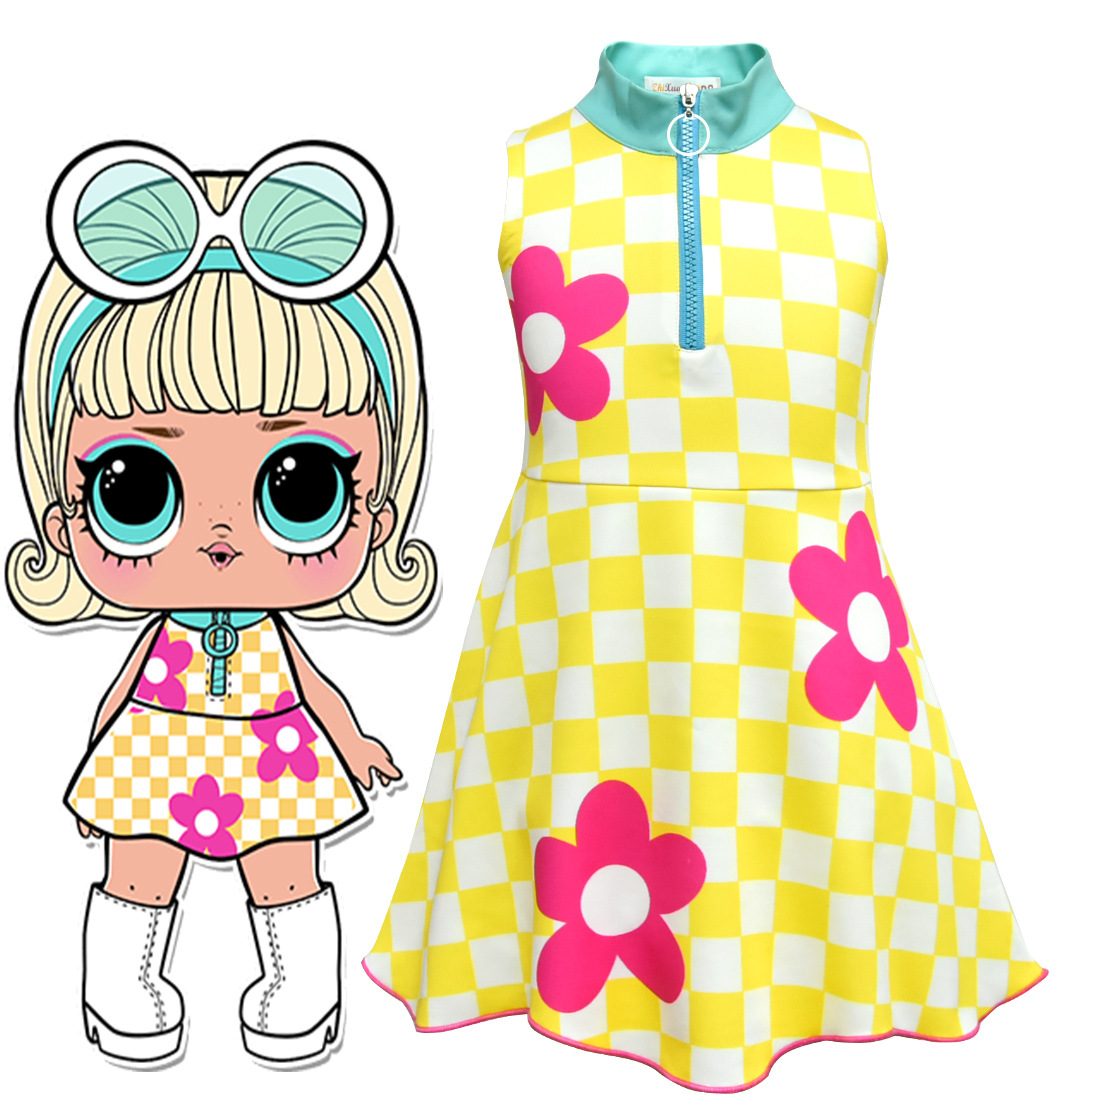 Lol Dolls Baby Dresses 2018 Summer Cute Elegant Dress Kids Party Christmas Costumes Children Clothes Princess Lol Girls Dress fashion christmas dress girls party accessories children s halloween costumes for girls party dress kids cute birthday dresses